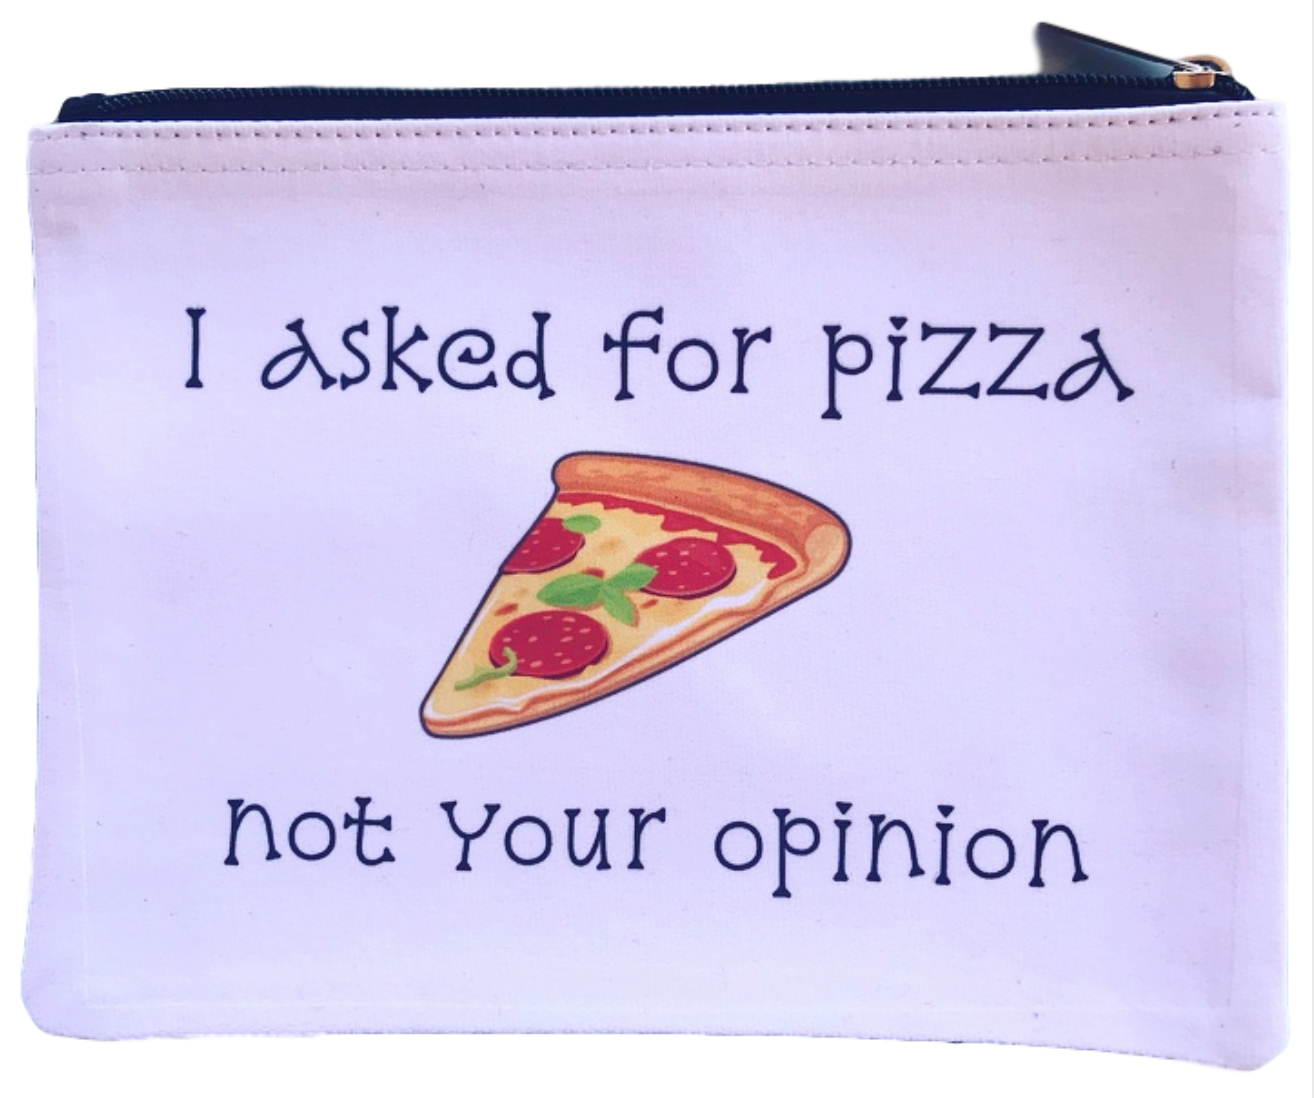 I asked for pizza pouch